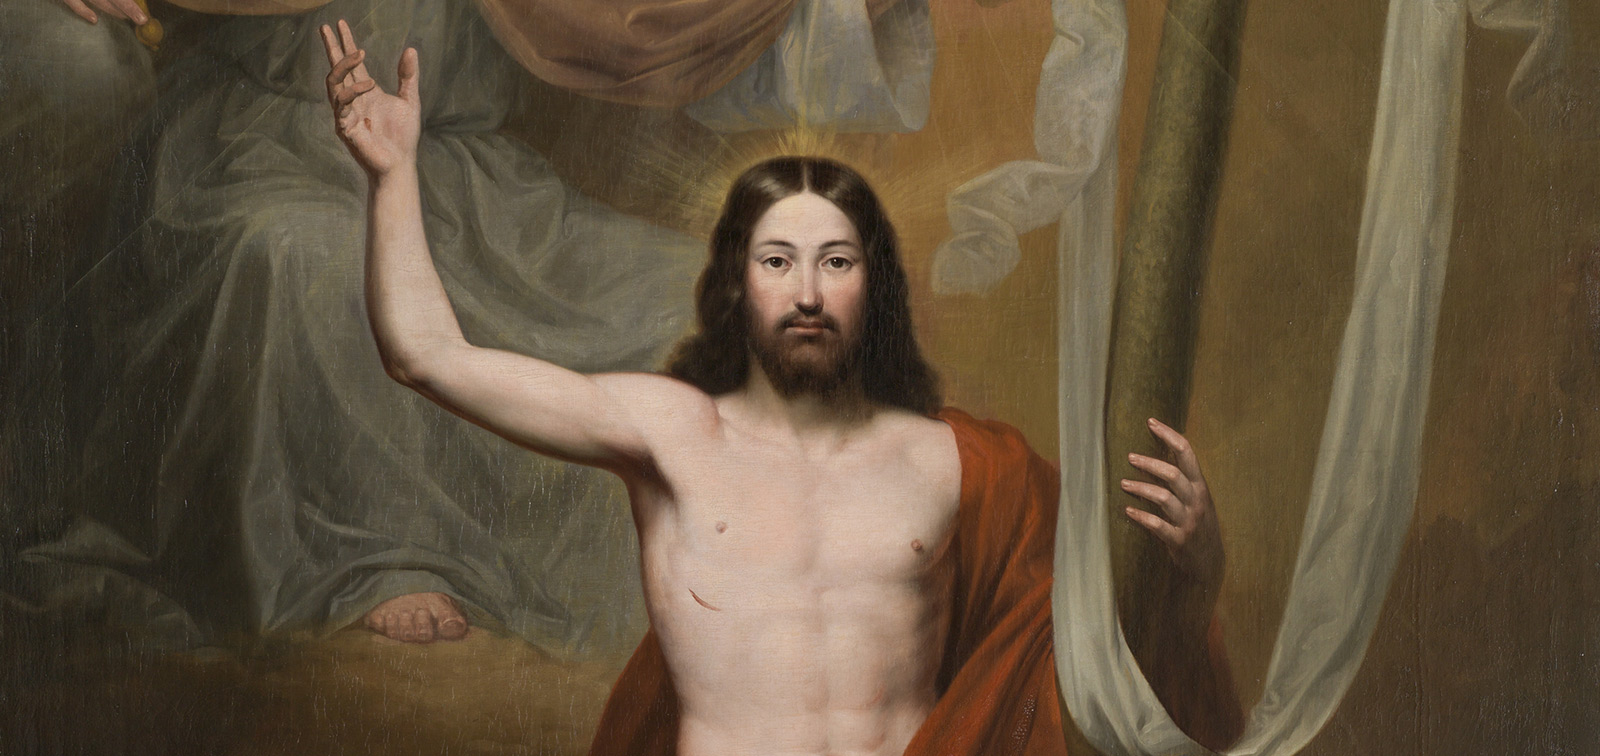 Antonio María Esquivel (1806-1857), his religious paintings